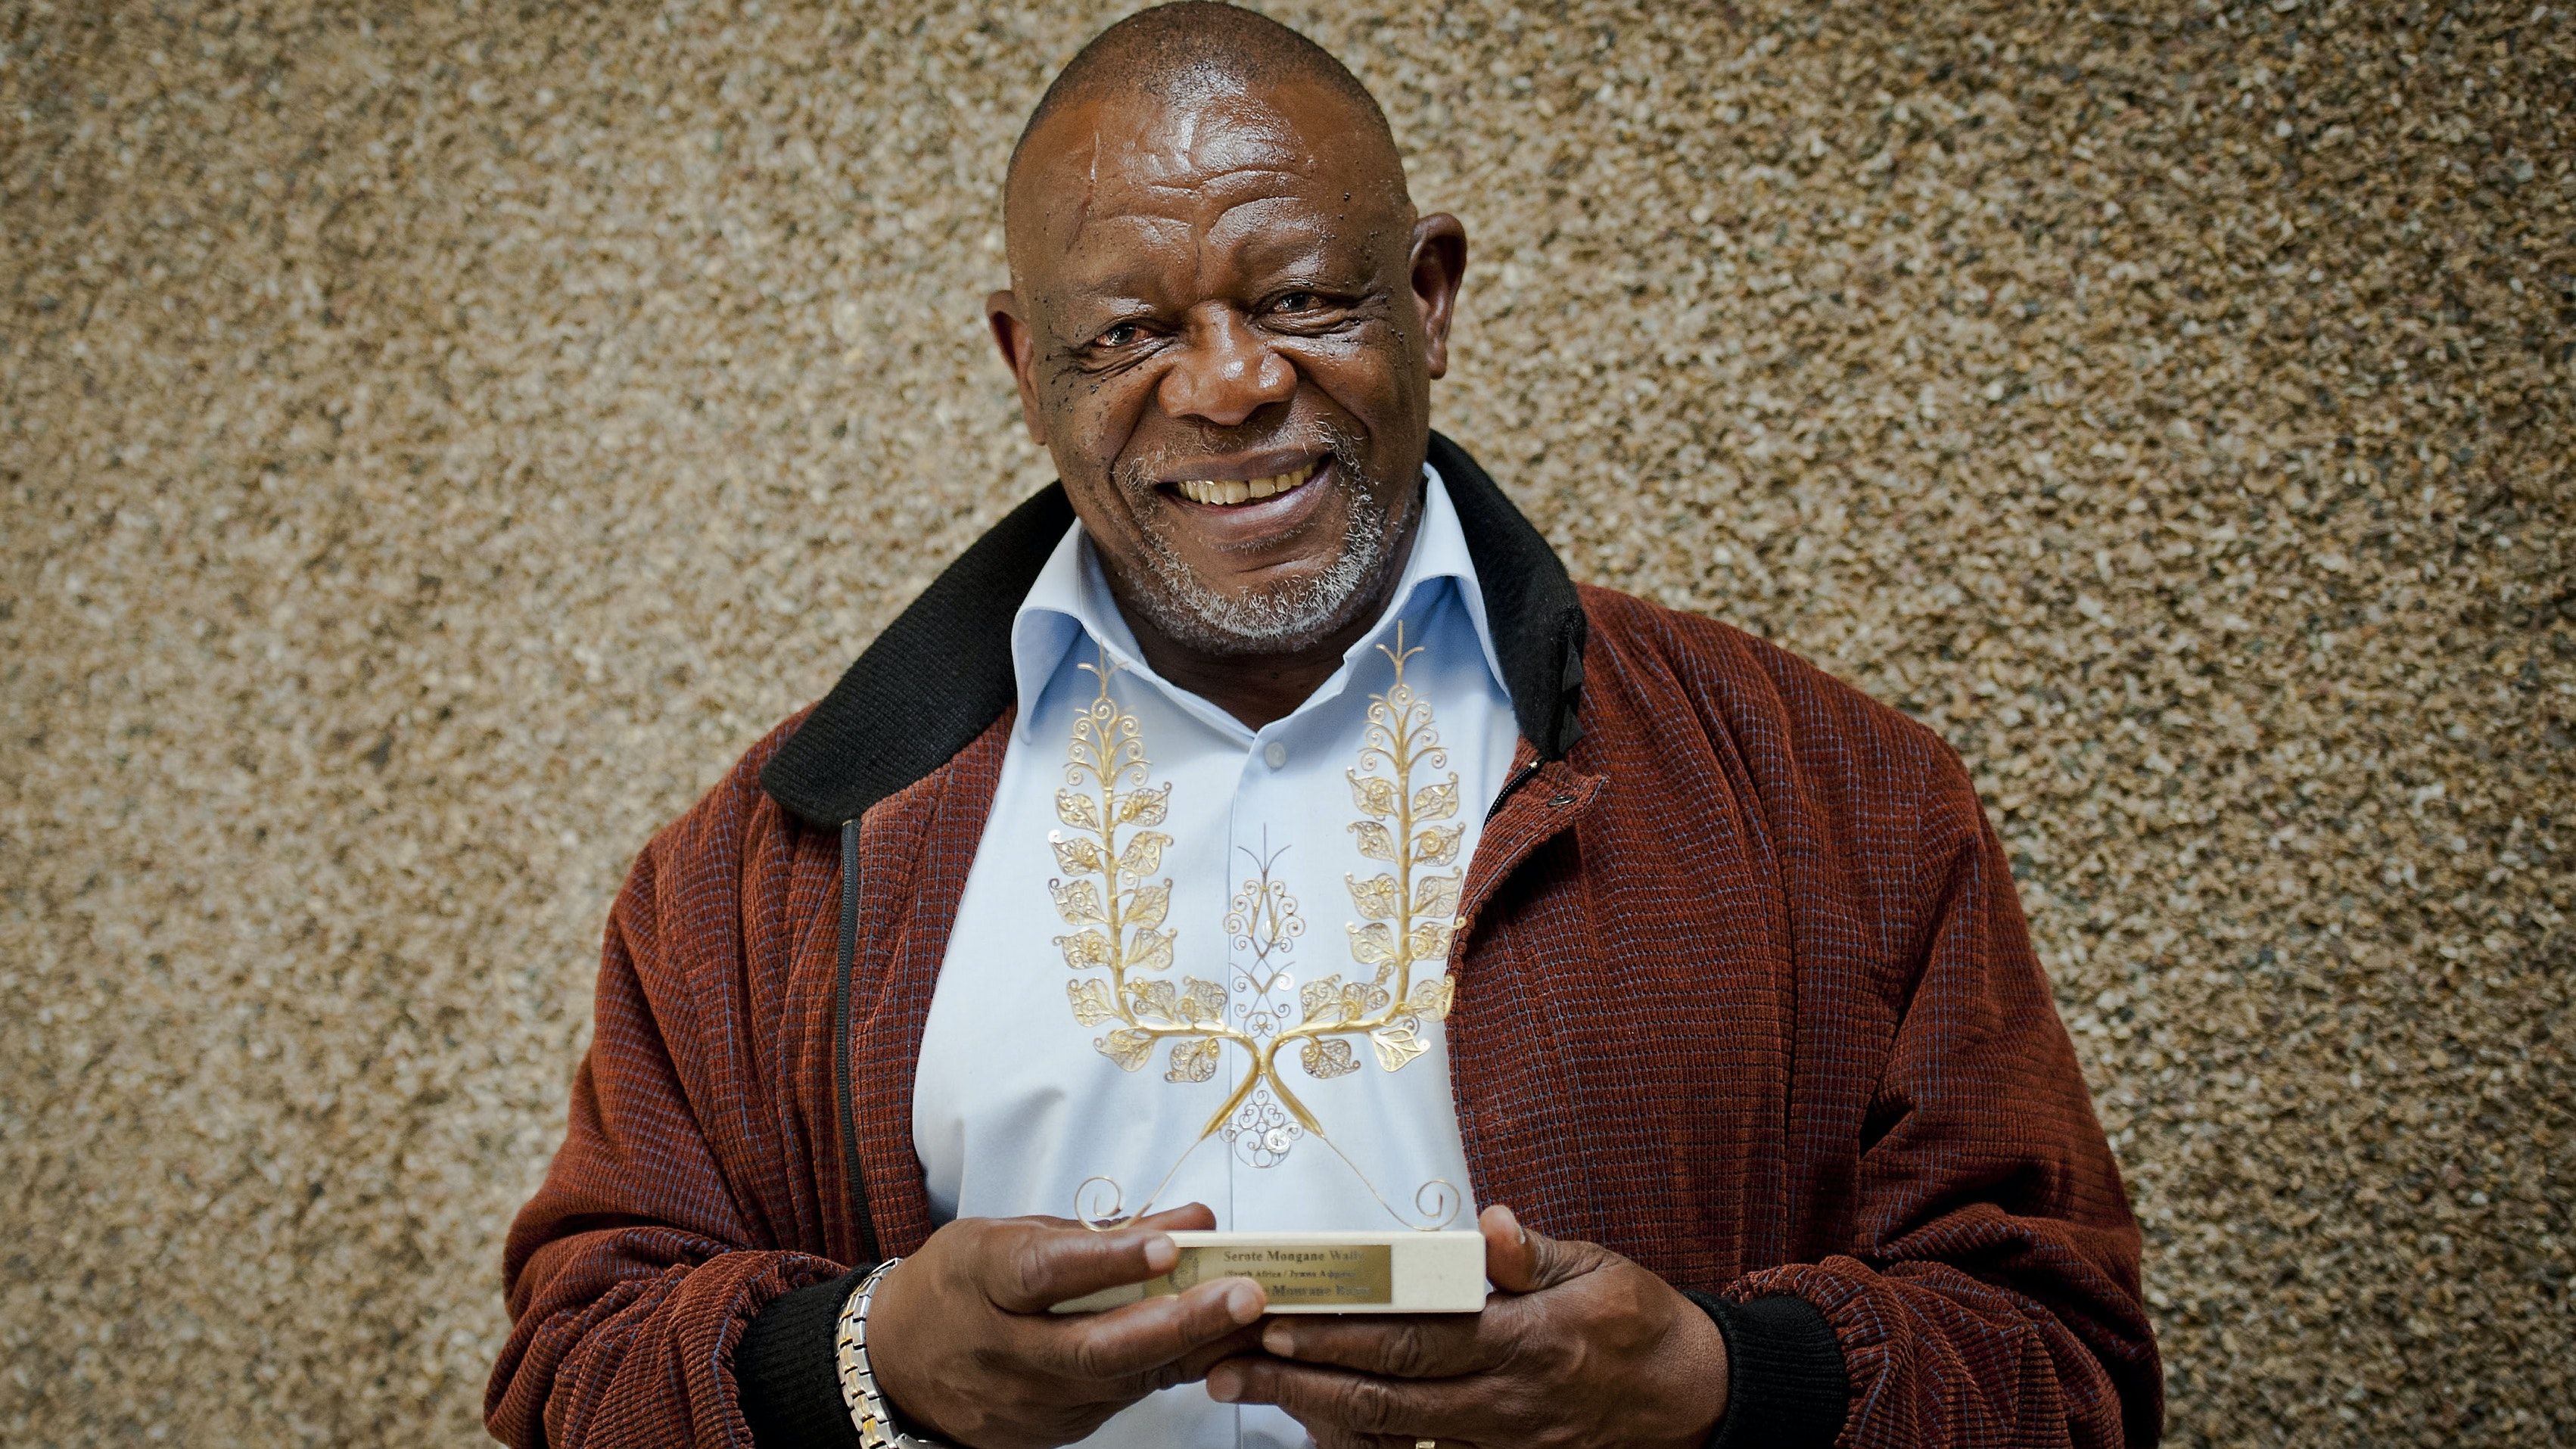 Image of poet and activist Dr. Mongane Wally Serote, a middle-aged gentleman wearing a brown jacket and blue shirt holding a gold award he had won for his poetry. The background is a gold wall.